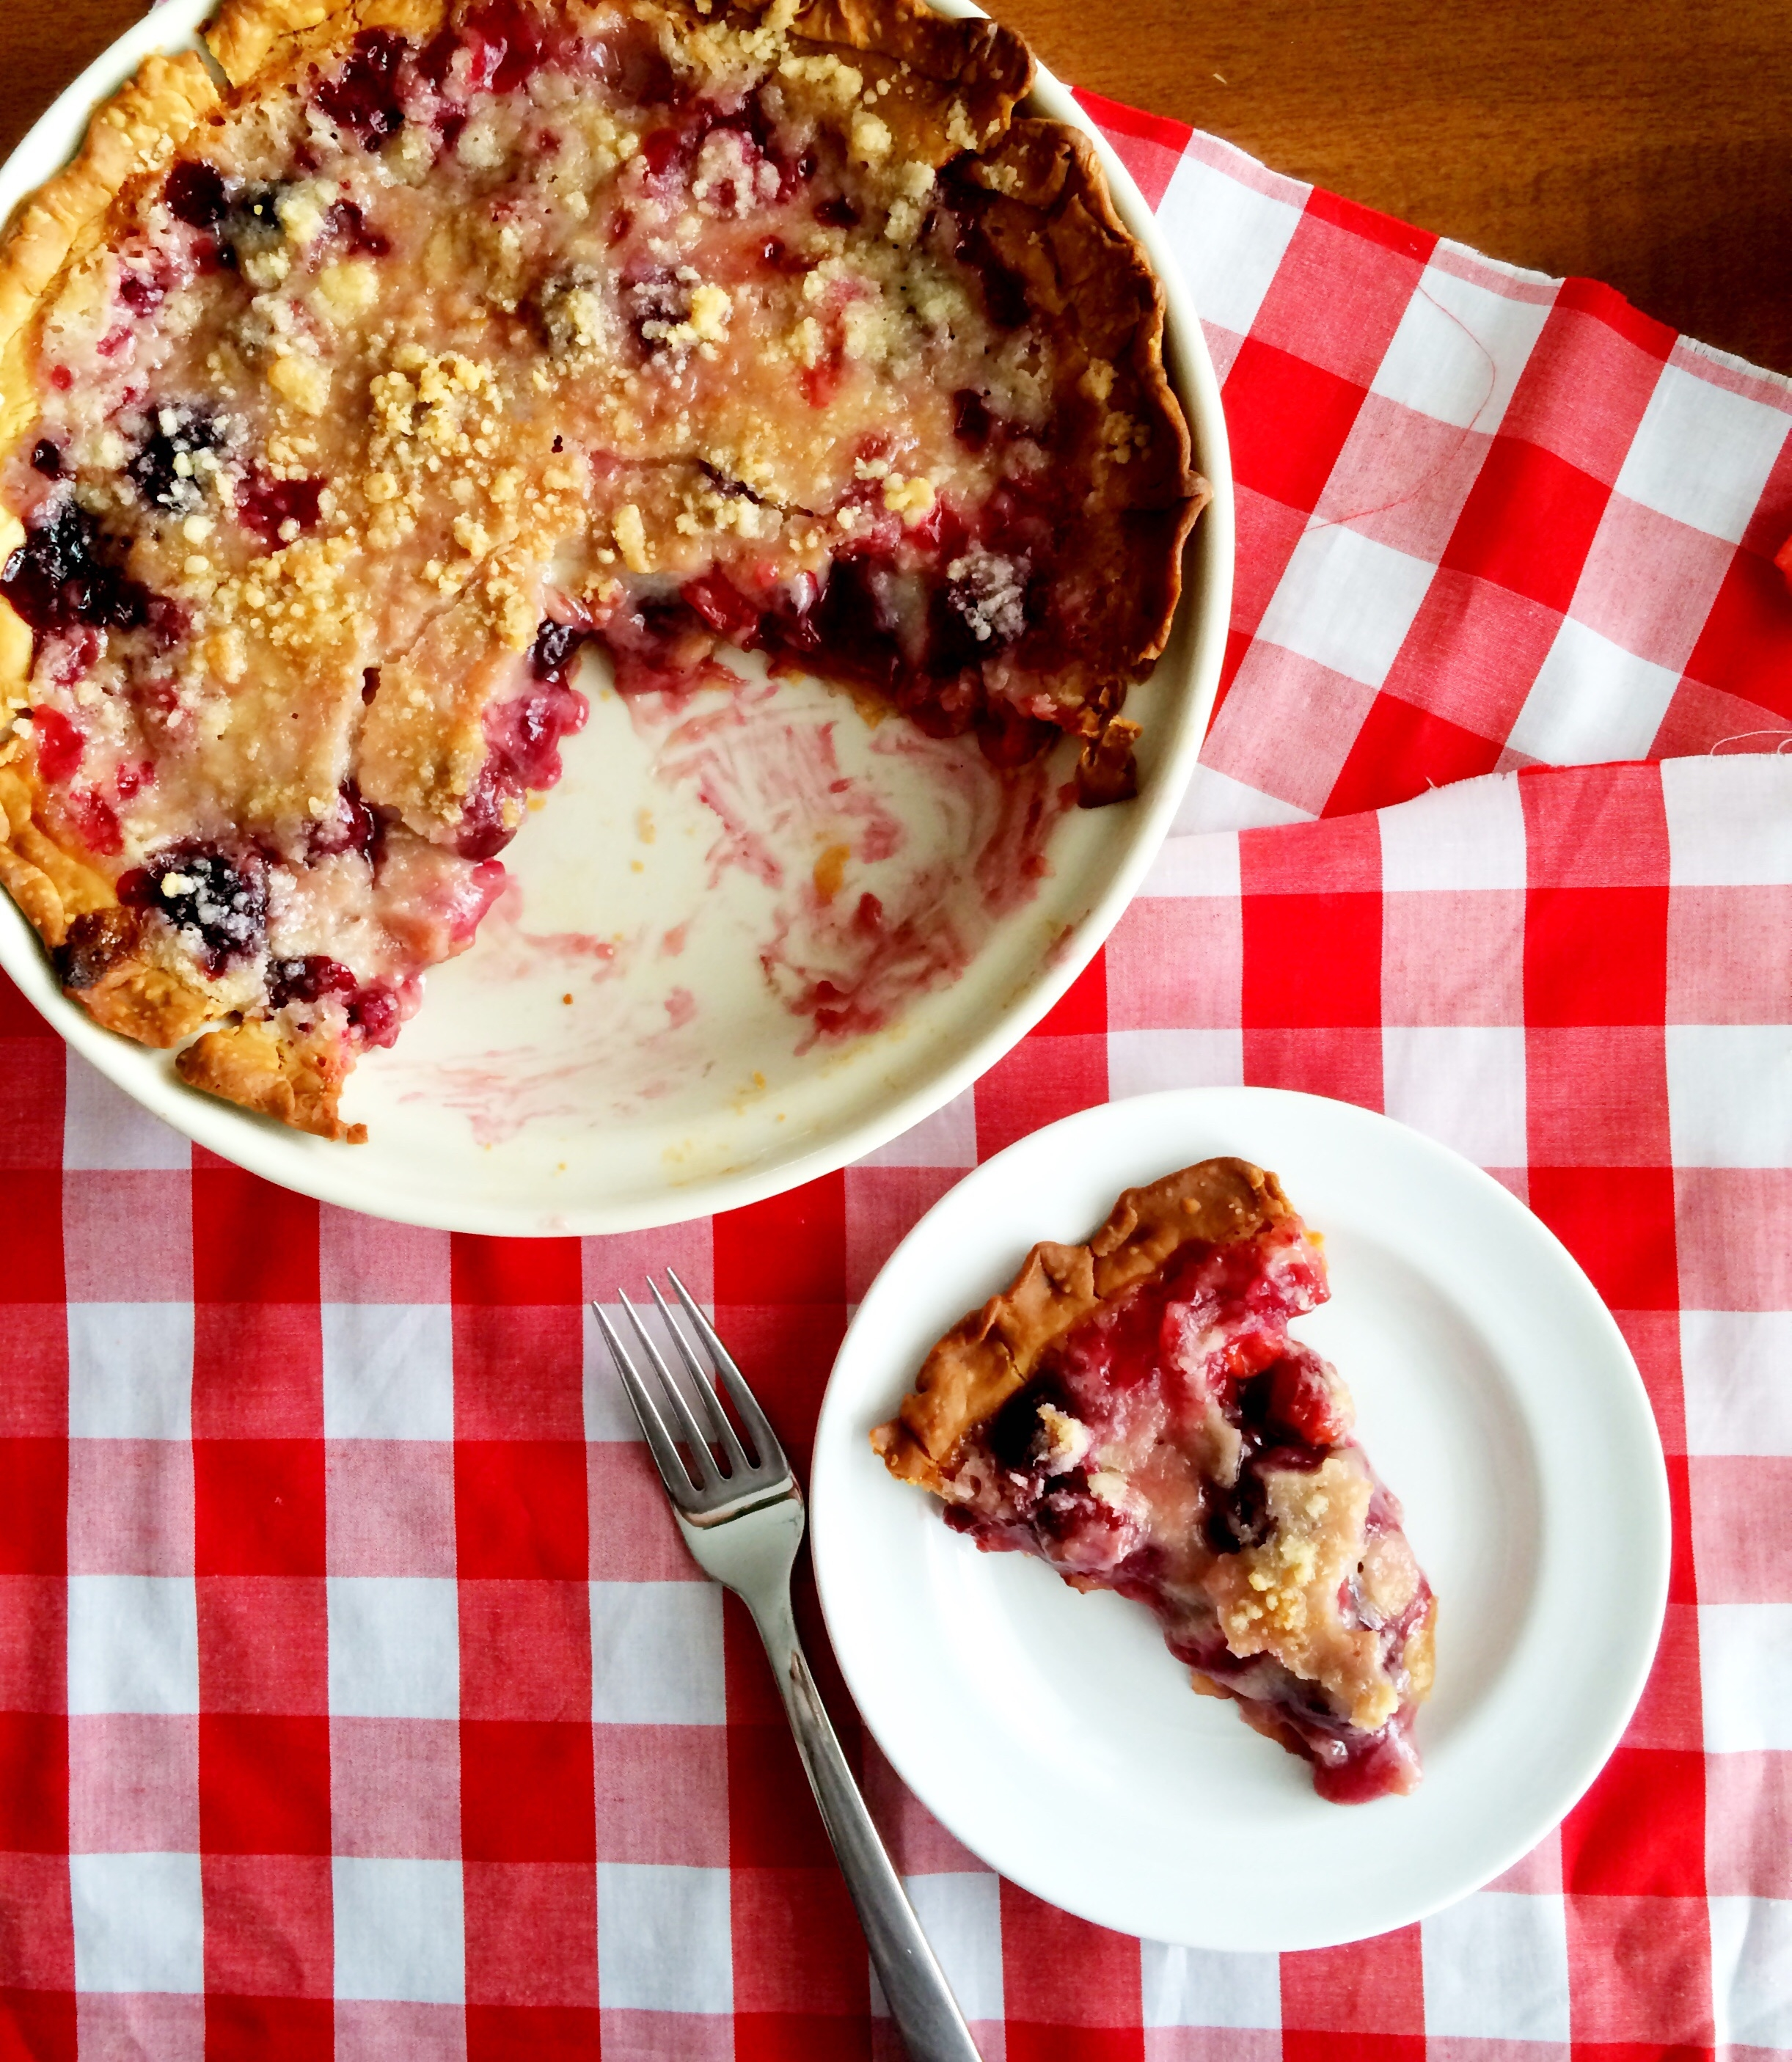 Crumb top cherry pie